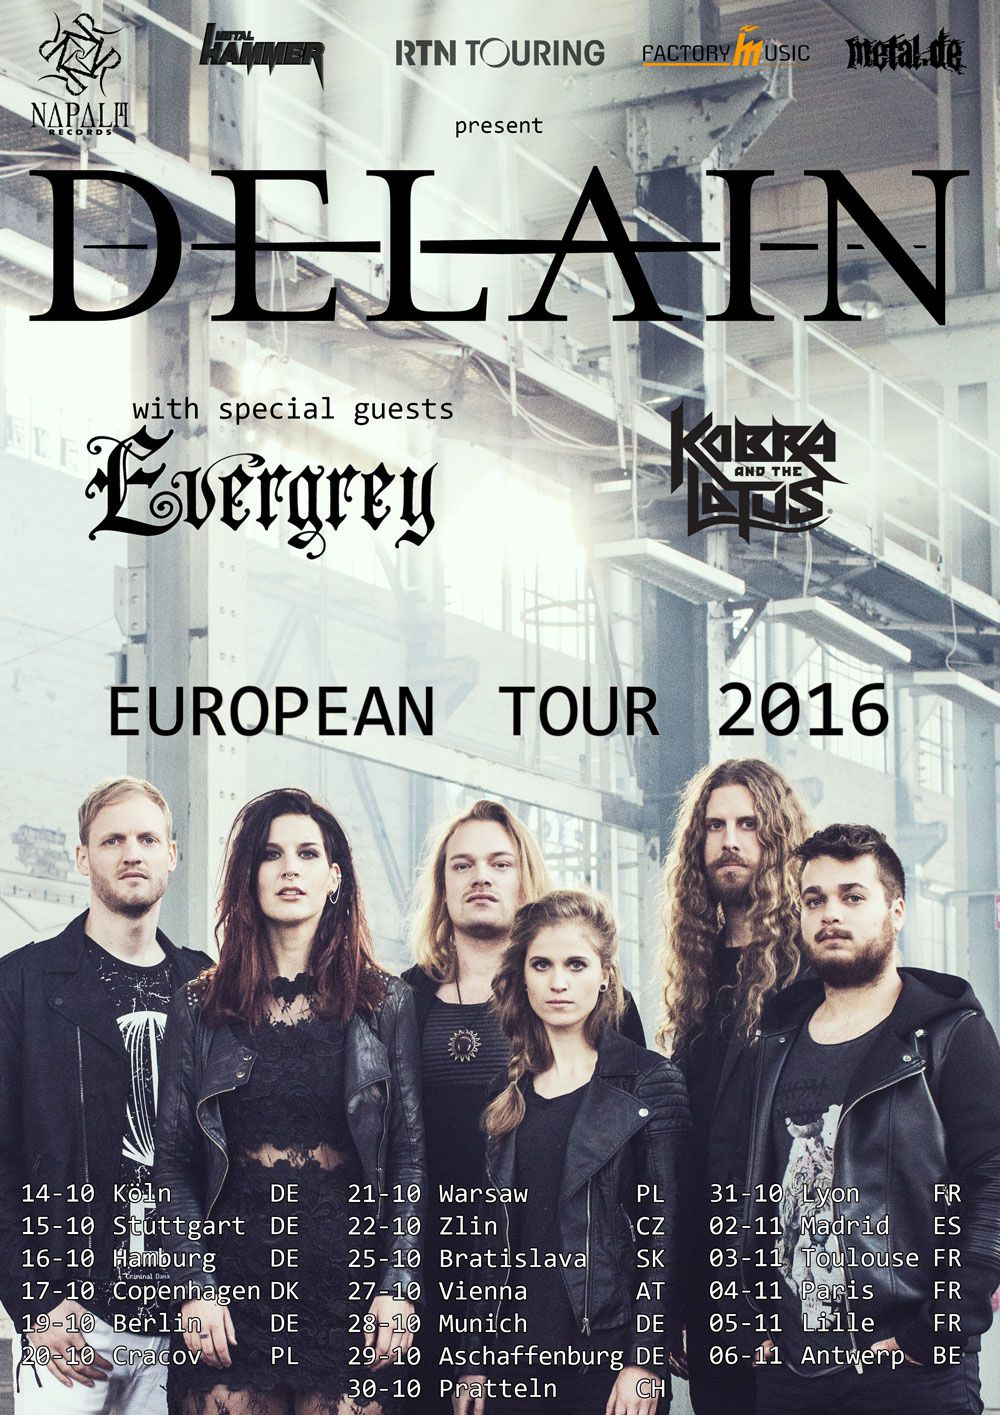 DELAIN announces European tour for autumn